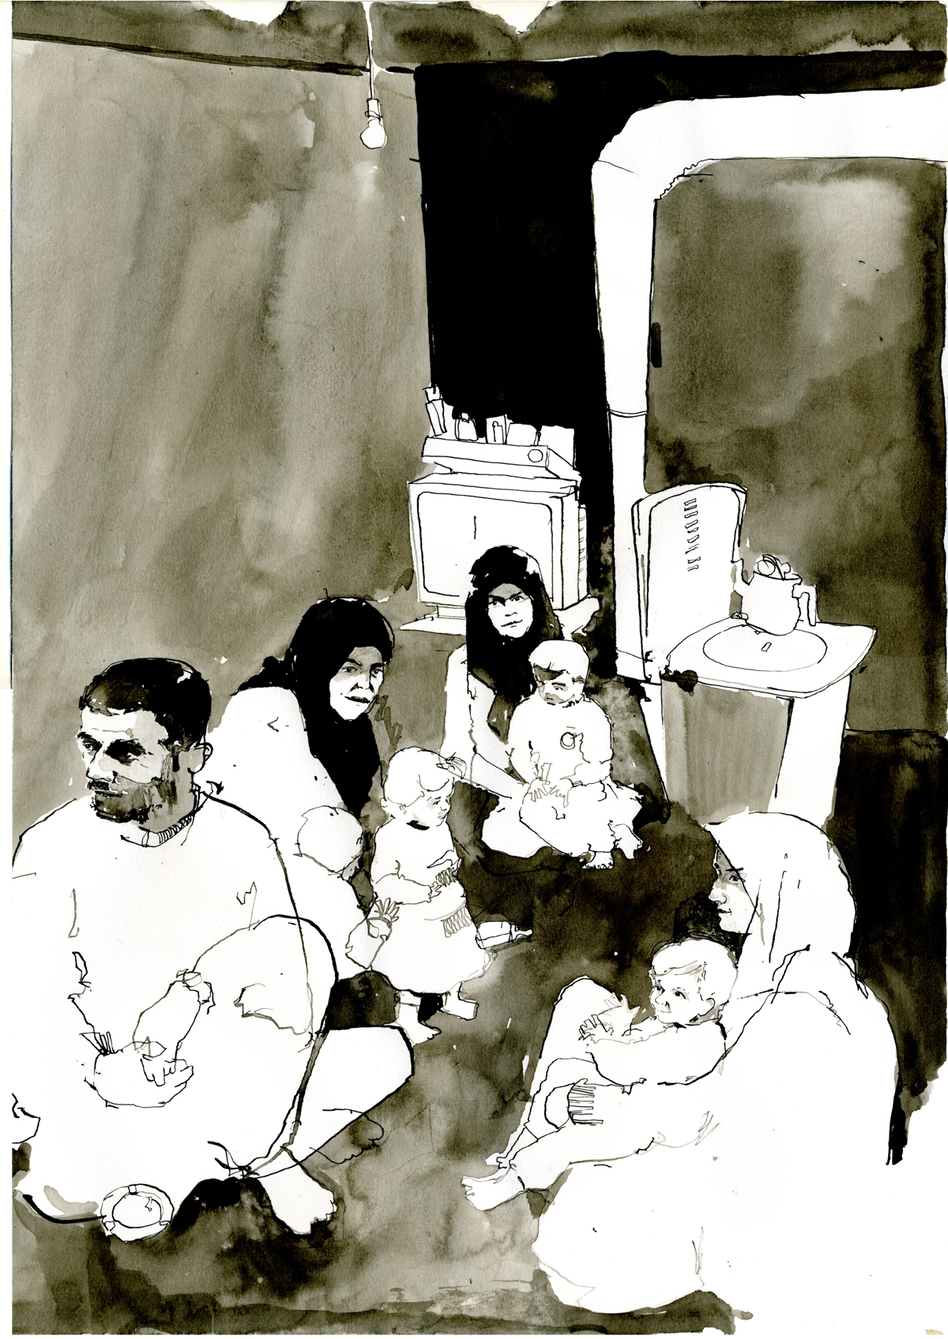 Although they are in Turkey, many Syrian refugees are so scared of the regime that they will not allow their pictures to be taken; even drawing takes some persuading. I felt such compassion for these people, but none more so when they thanked me for drawing them. So generous and so brave. (Courtesy of George Butler)